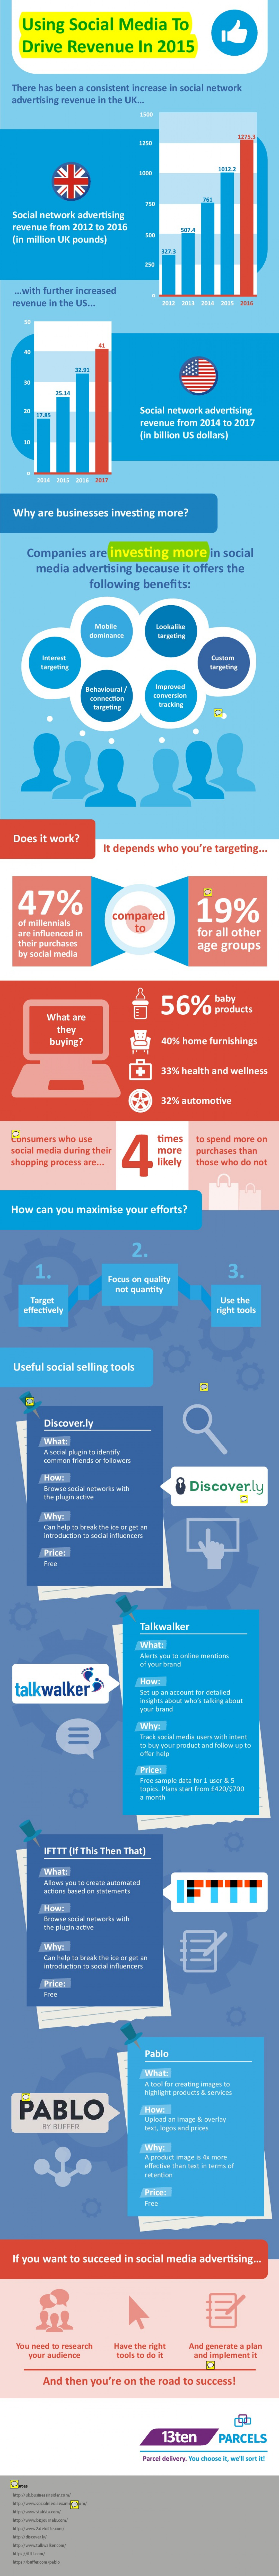 Using Social Media to Drive Ecommerce Revenue Infographic